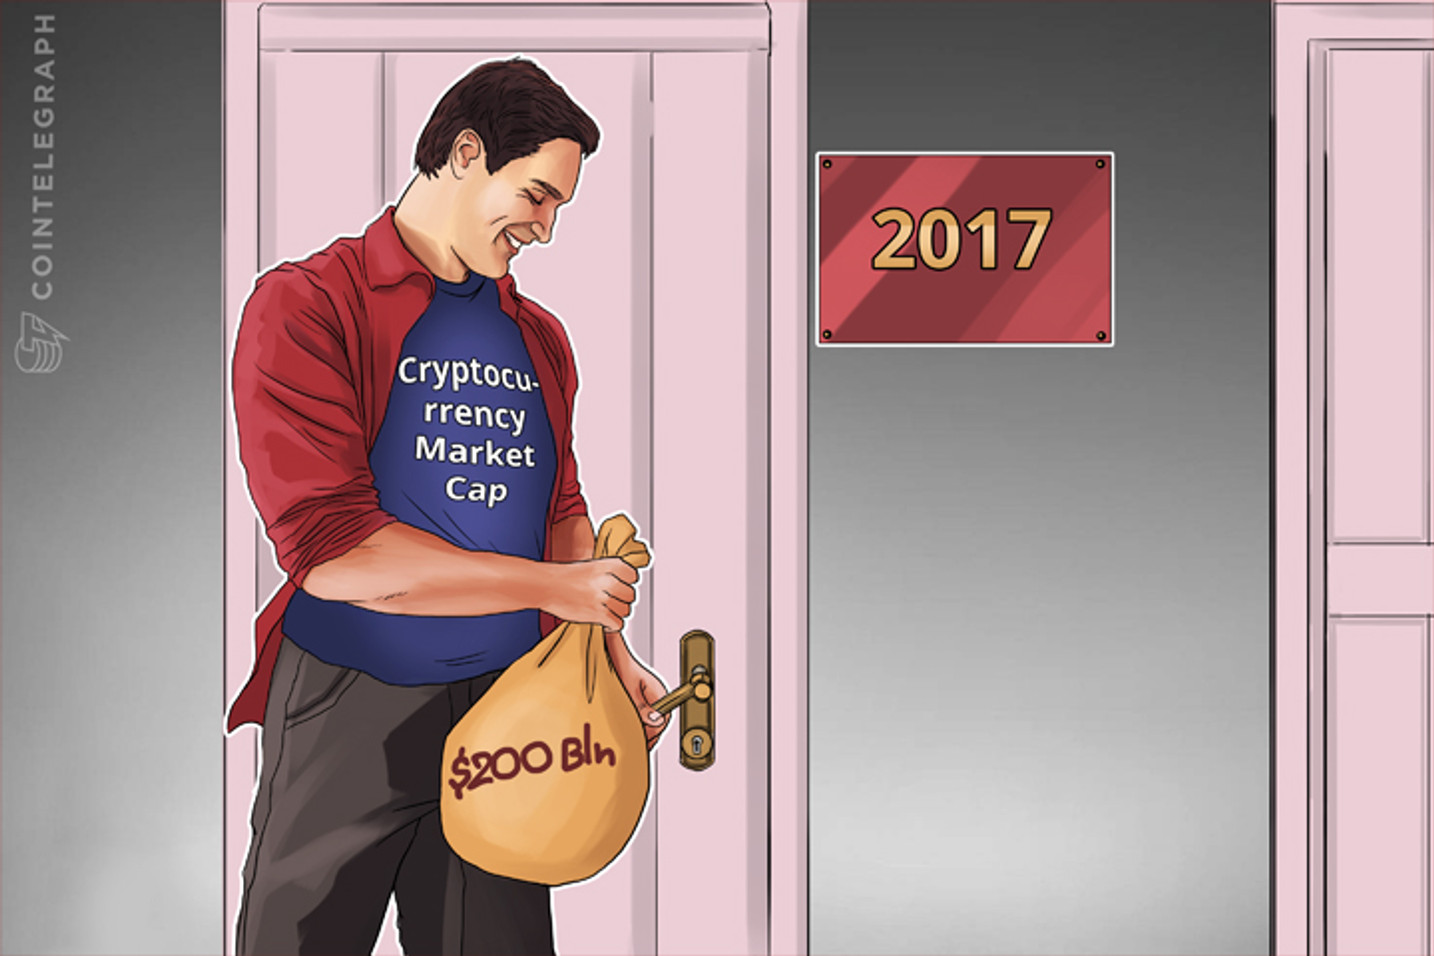 Cryptocurrency Market Cap Can Exceed $200 Bln by the End of 2017